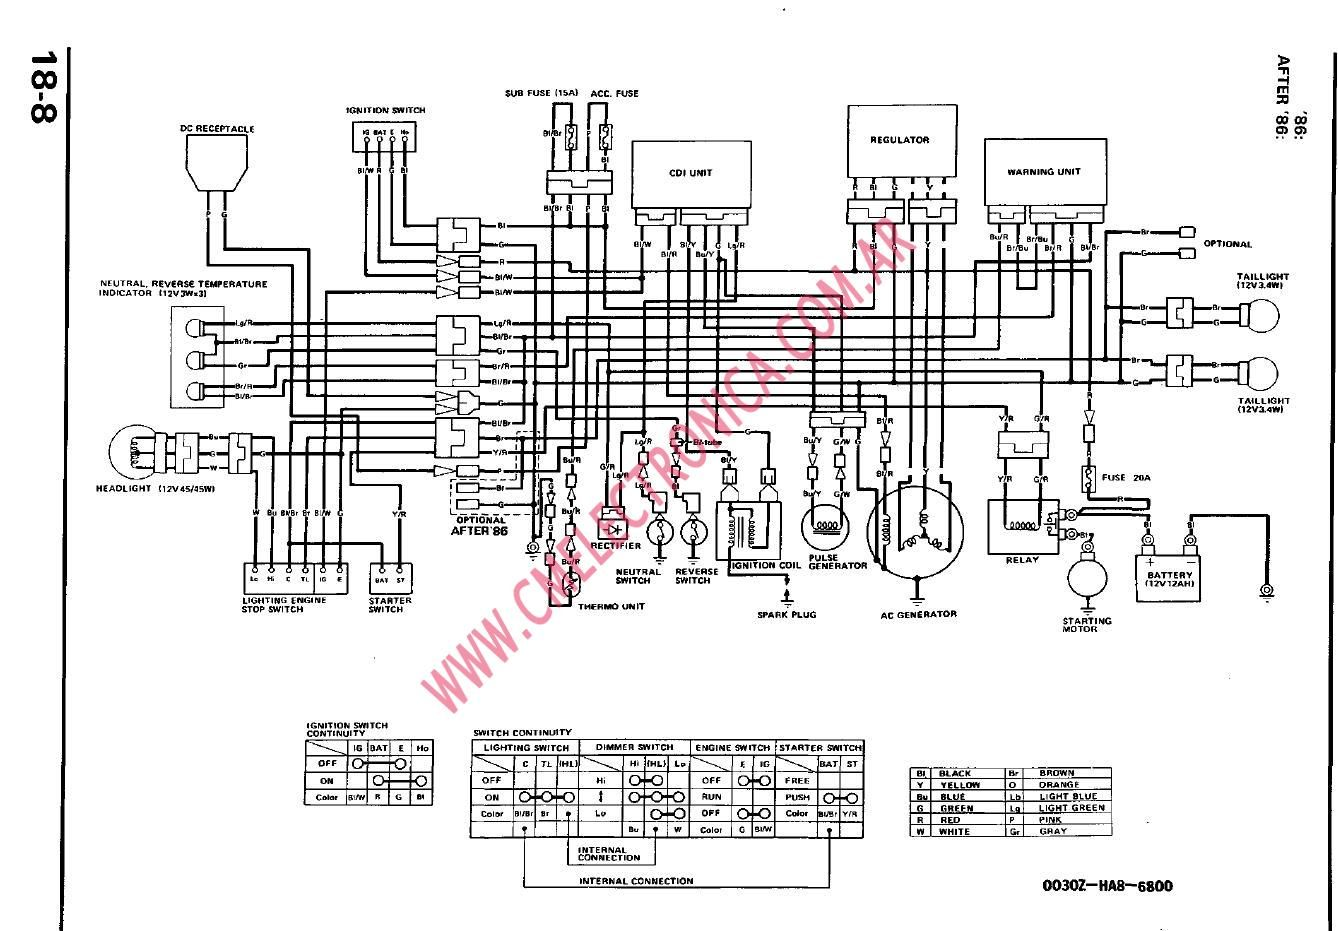 electric scooter wiring diagram get free image about wiring diagram